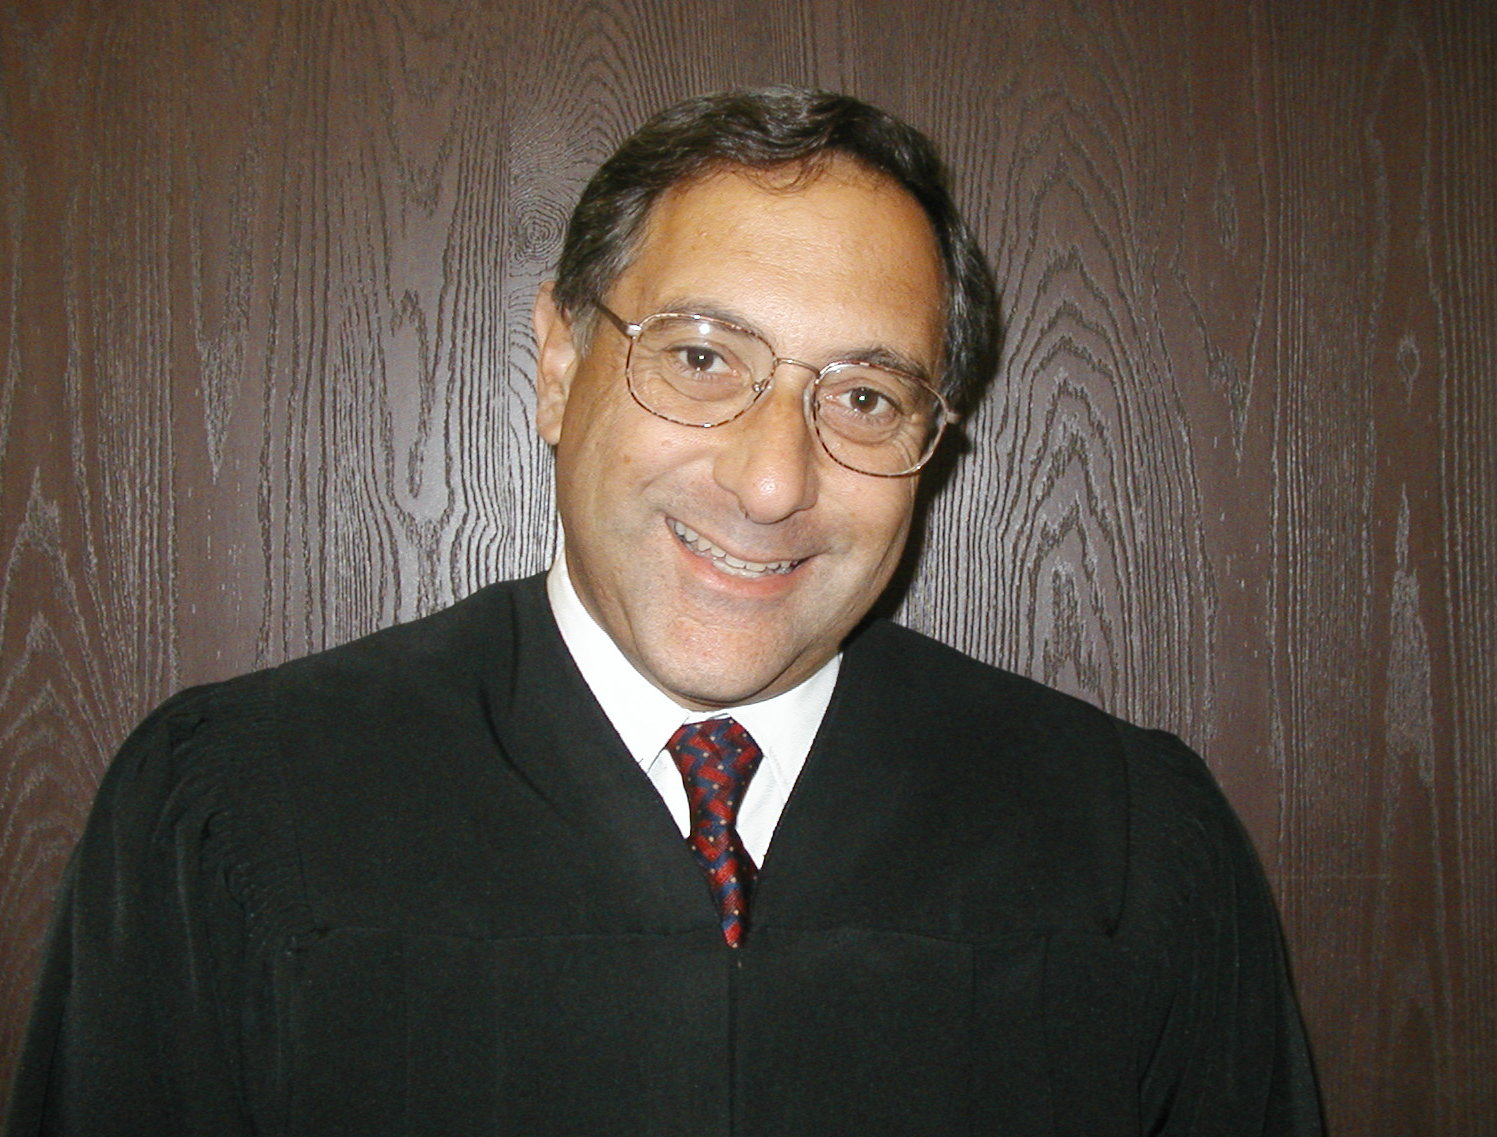 Hon. Judge Thomas H. Cahraman